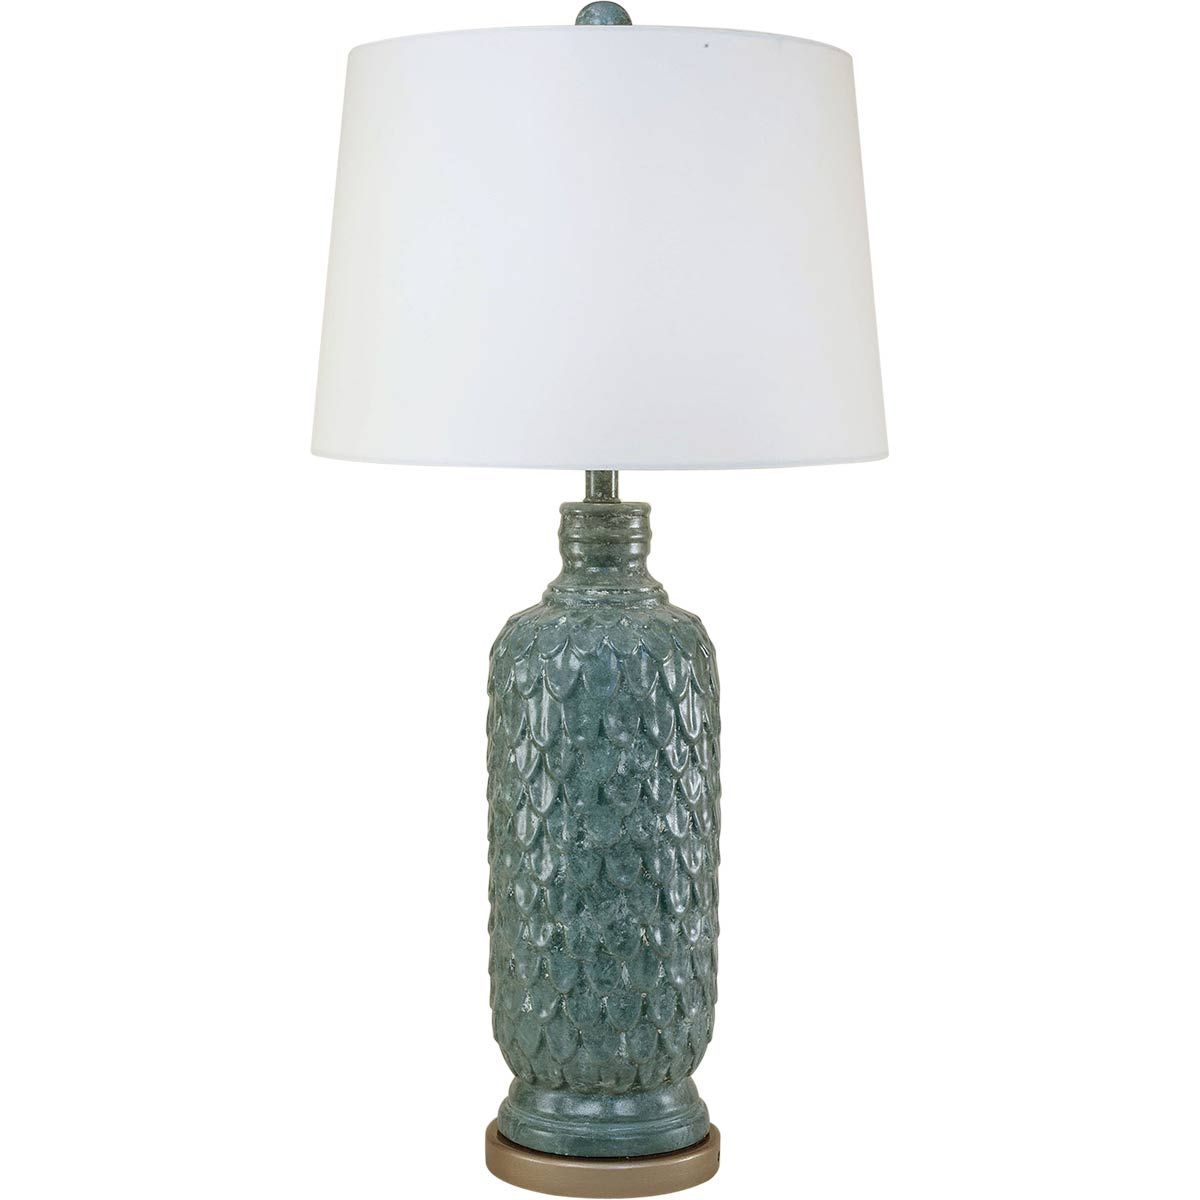 Feathered Table Lamp